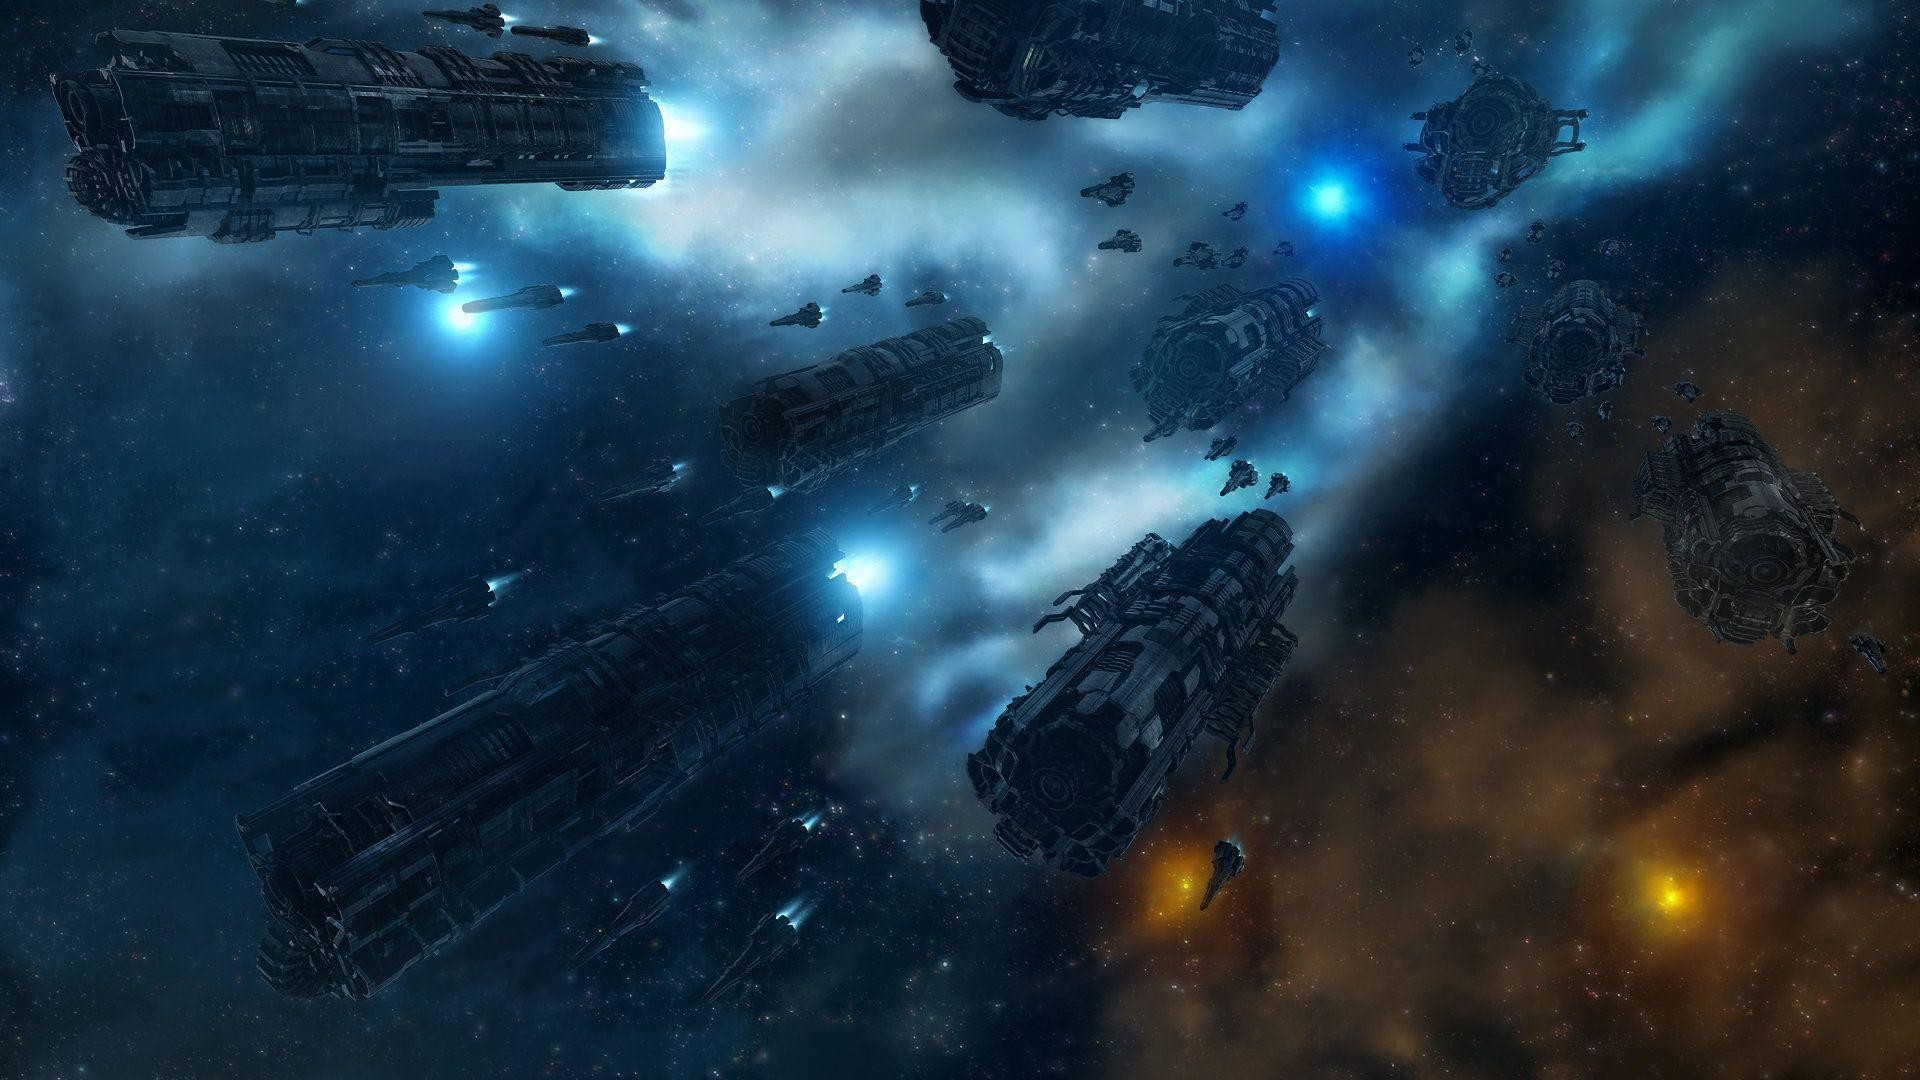 Outer Space Desktop Backgrounds Widescreen 2 HD Wallpapers | lzamgs.